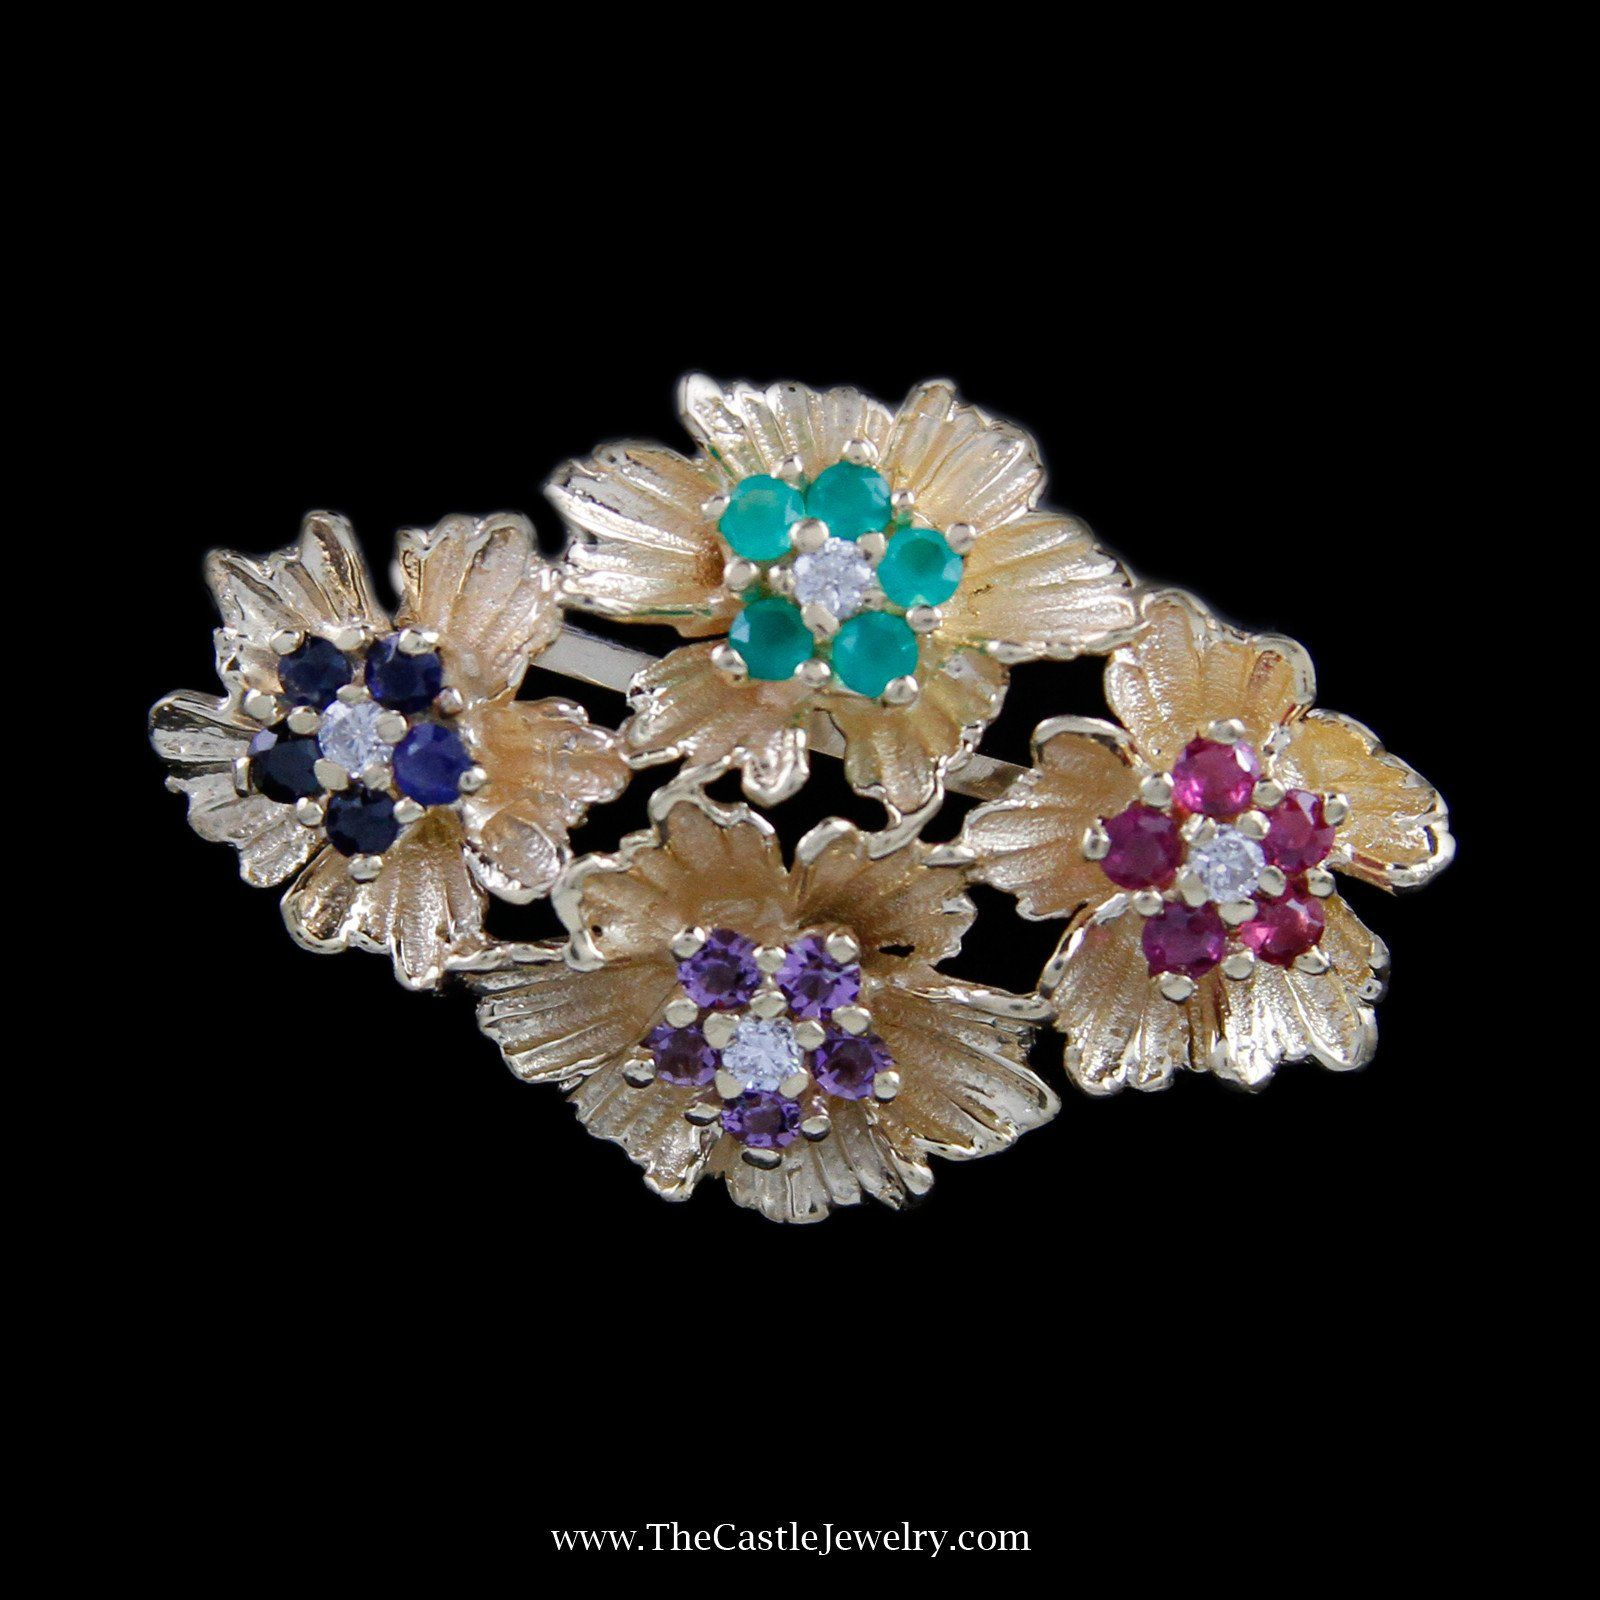 Beautiful Flower Multiple Gemstone Pin with Diamond Accents in 14K Yellow Gold